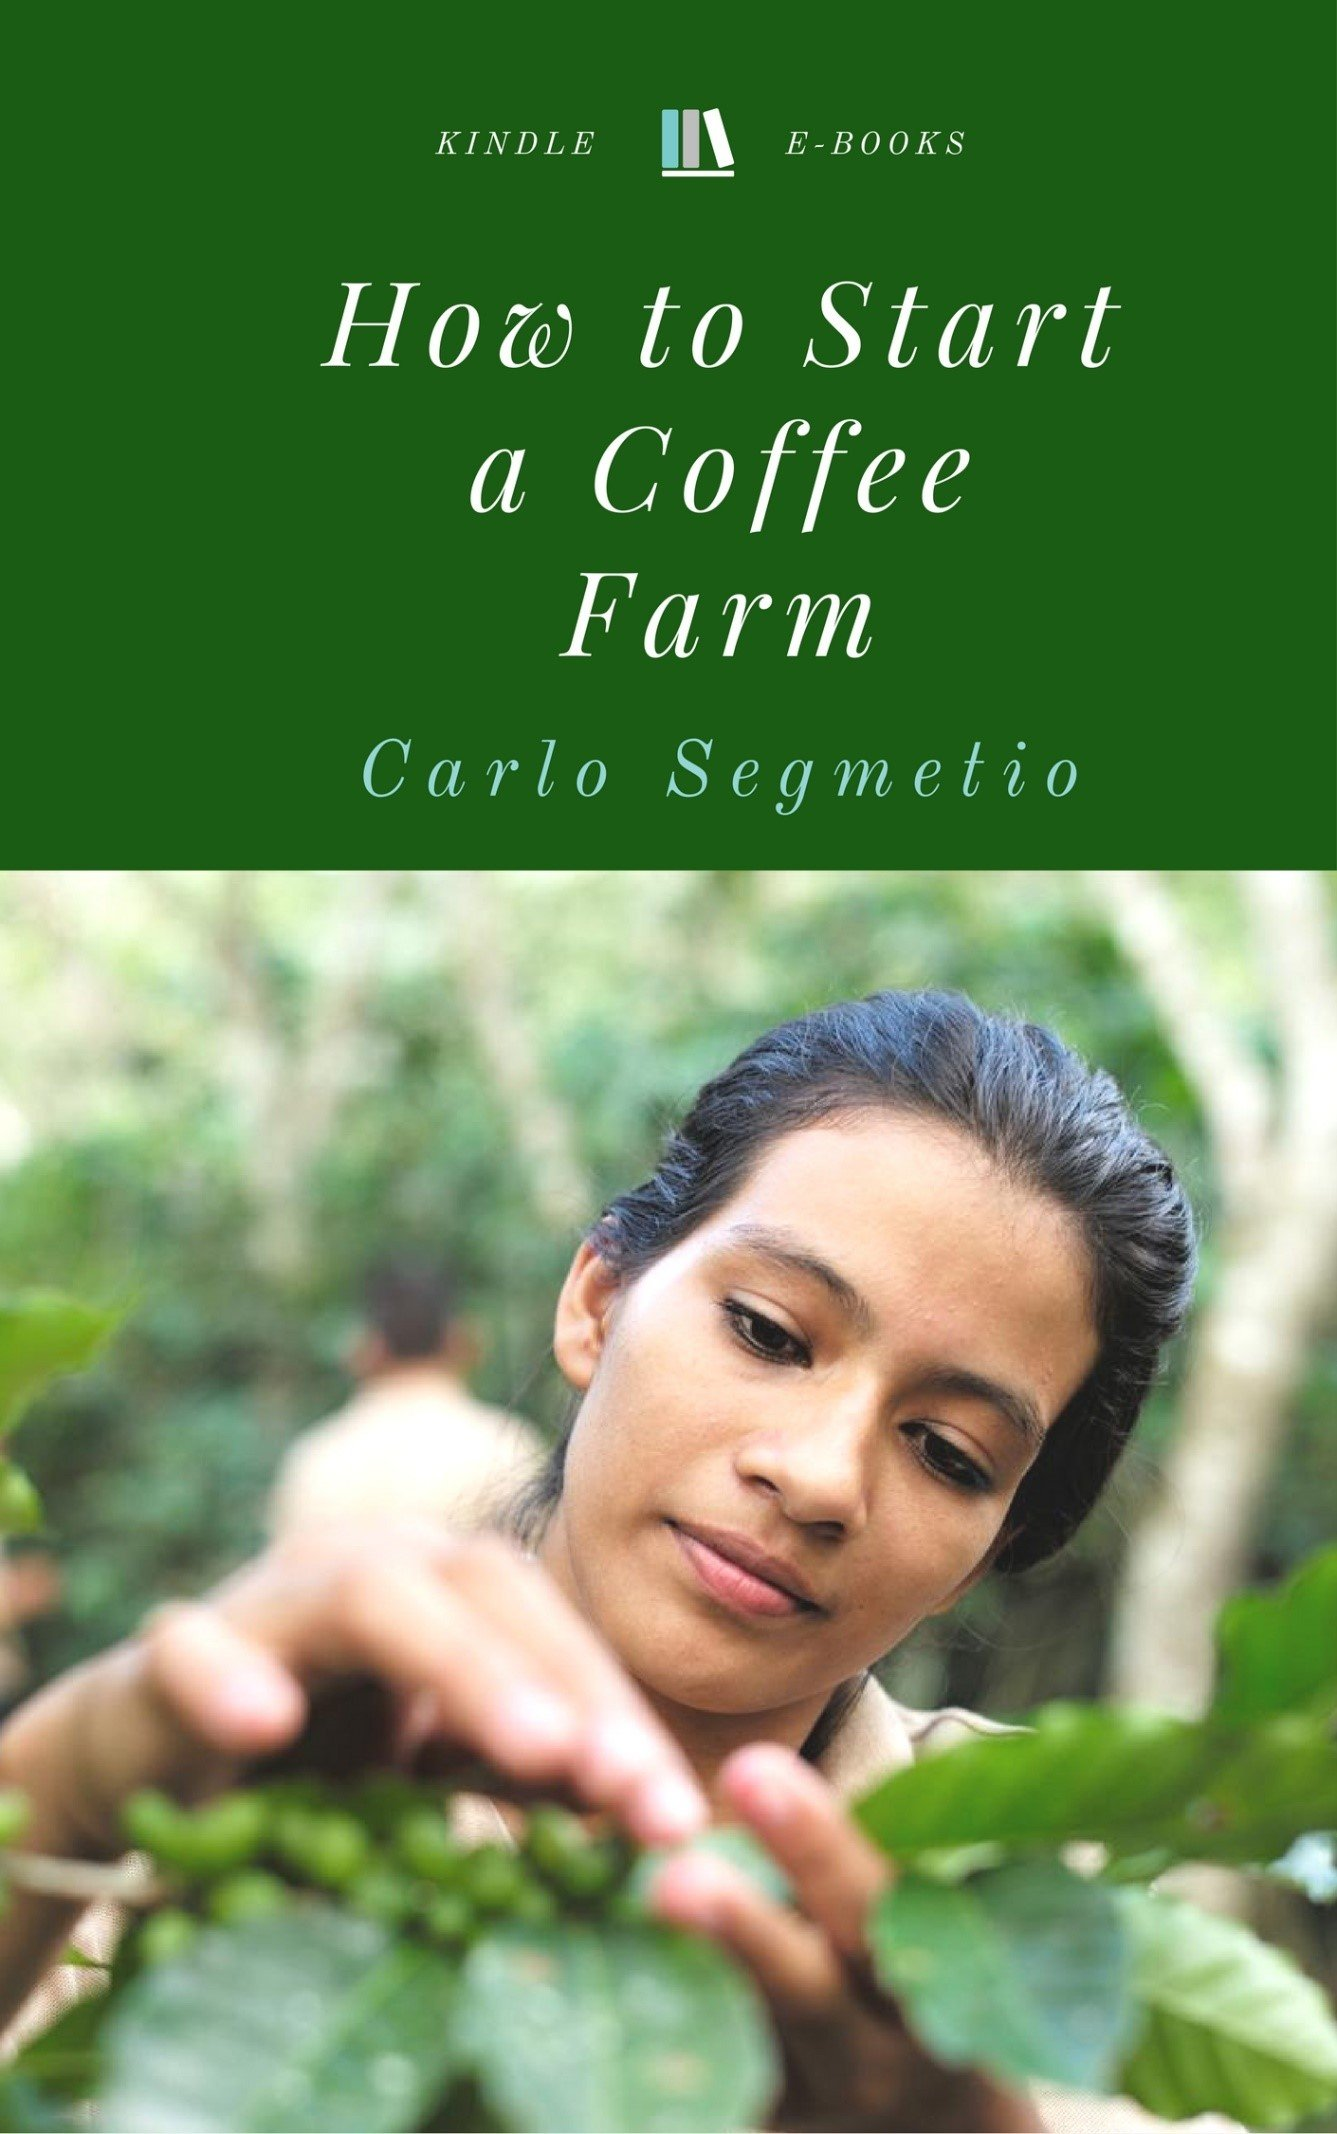 How to Start a Coffee Farm